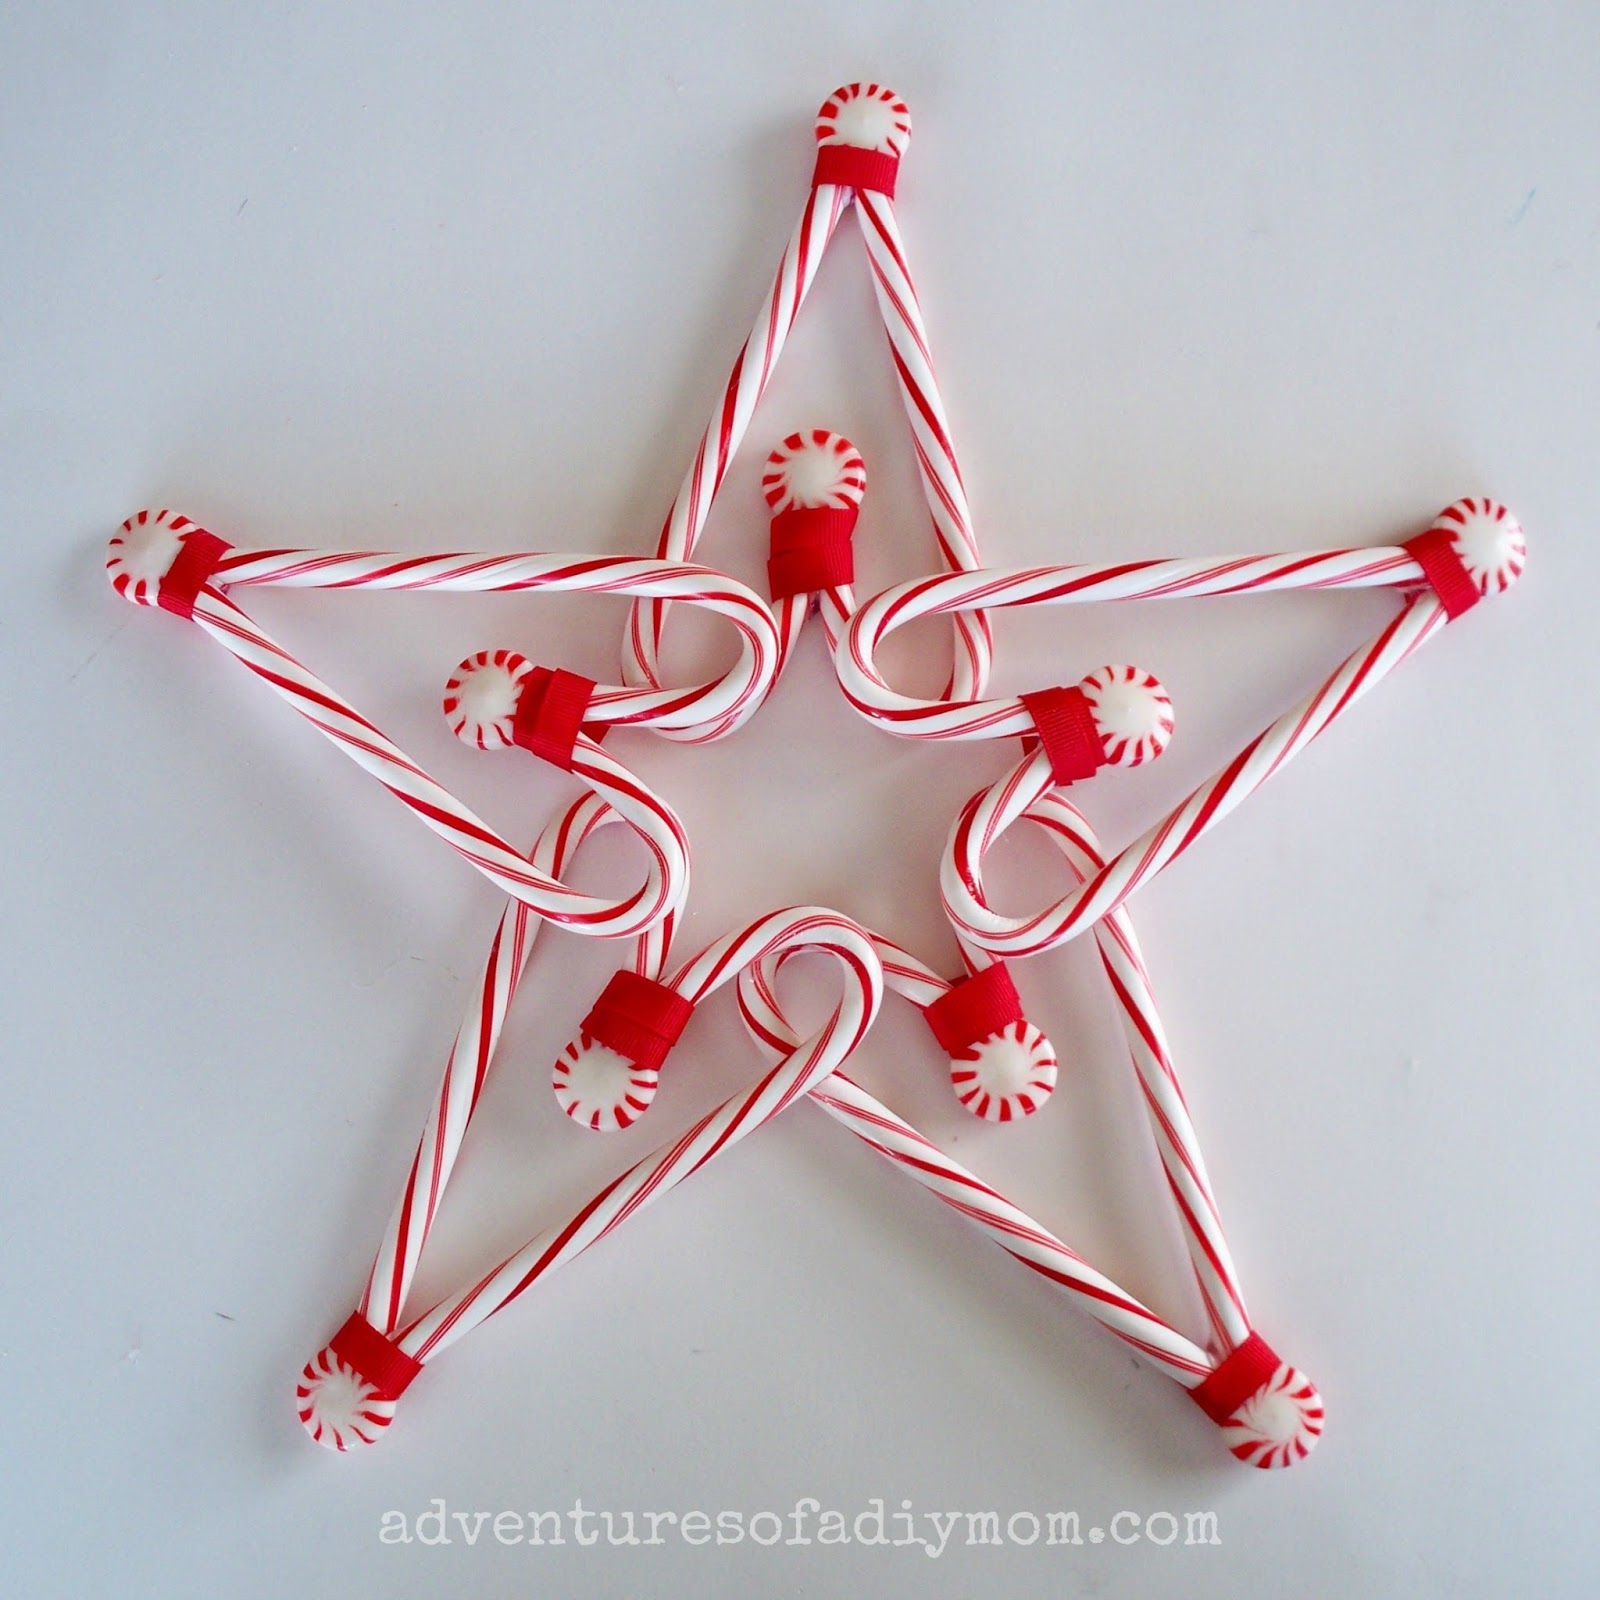 How to Make a Candy Cane Star Tree Topper